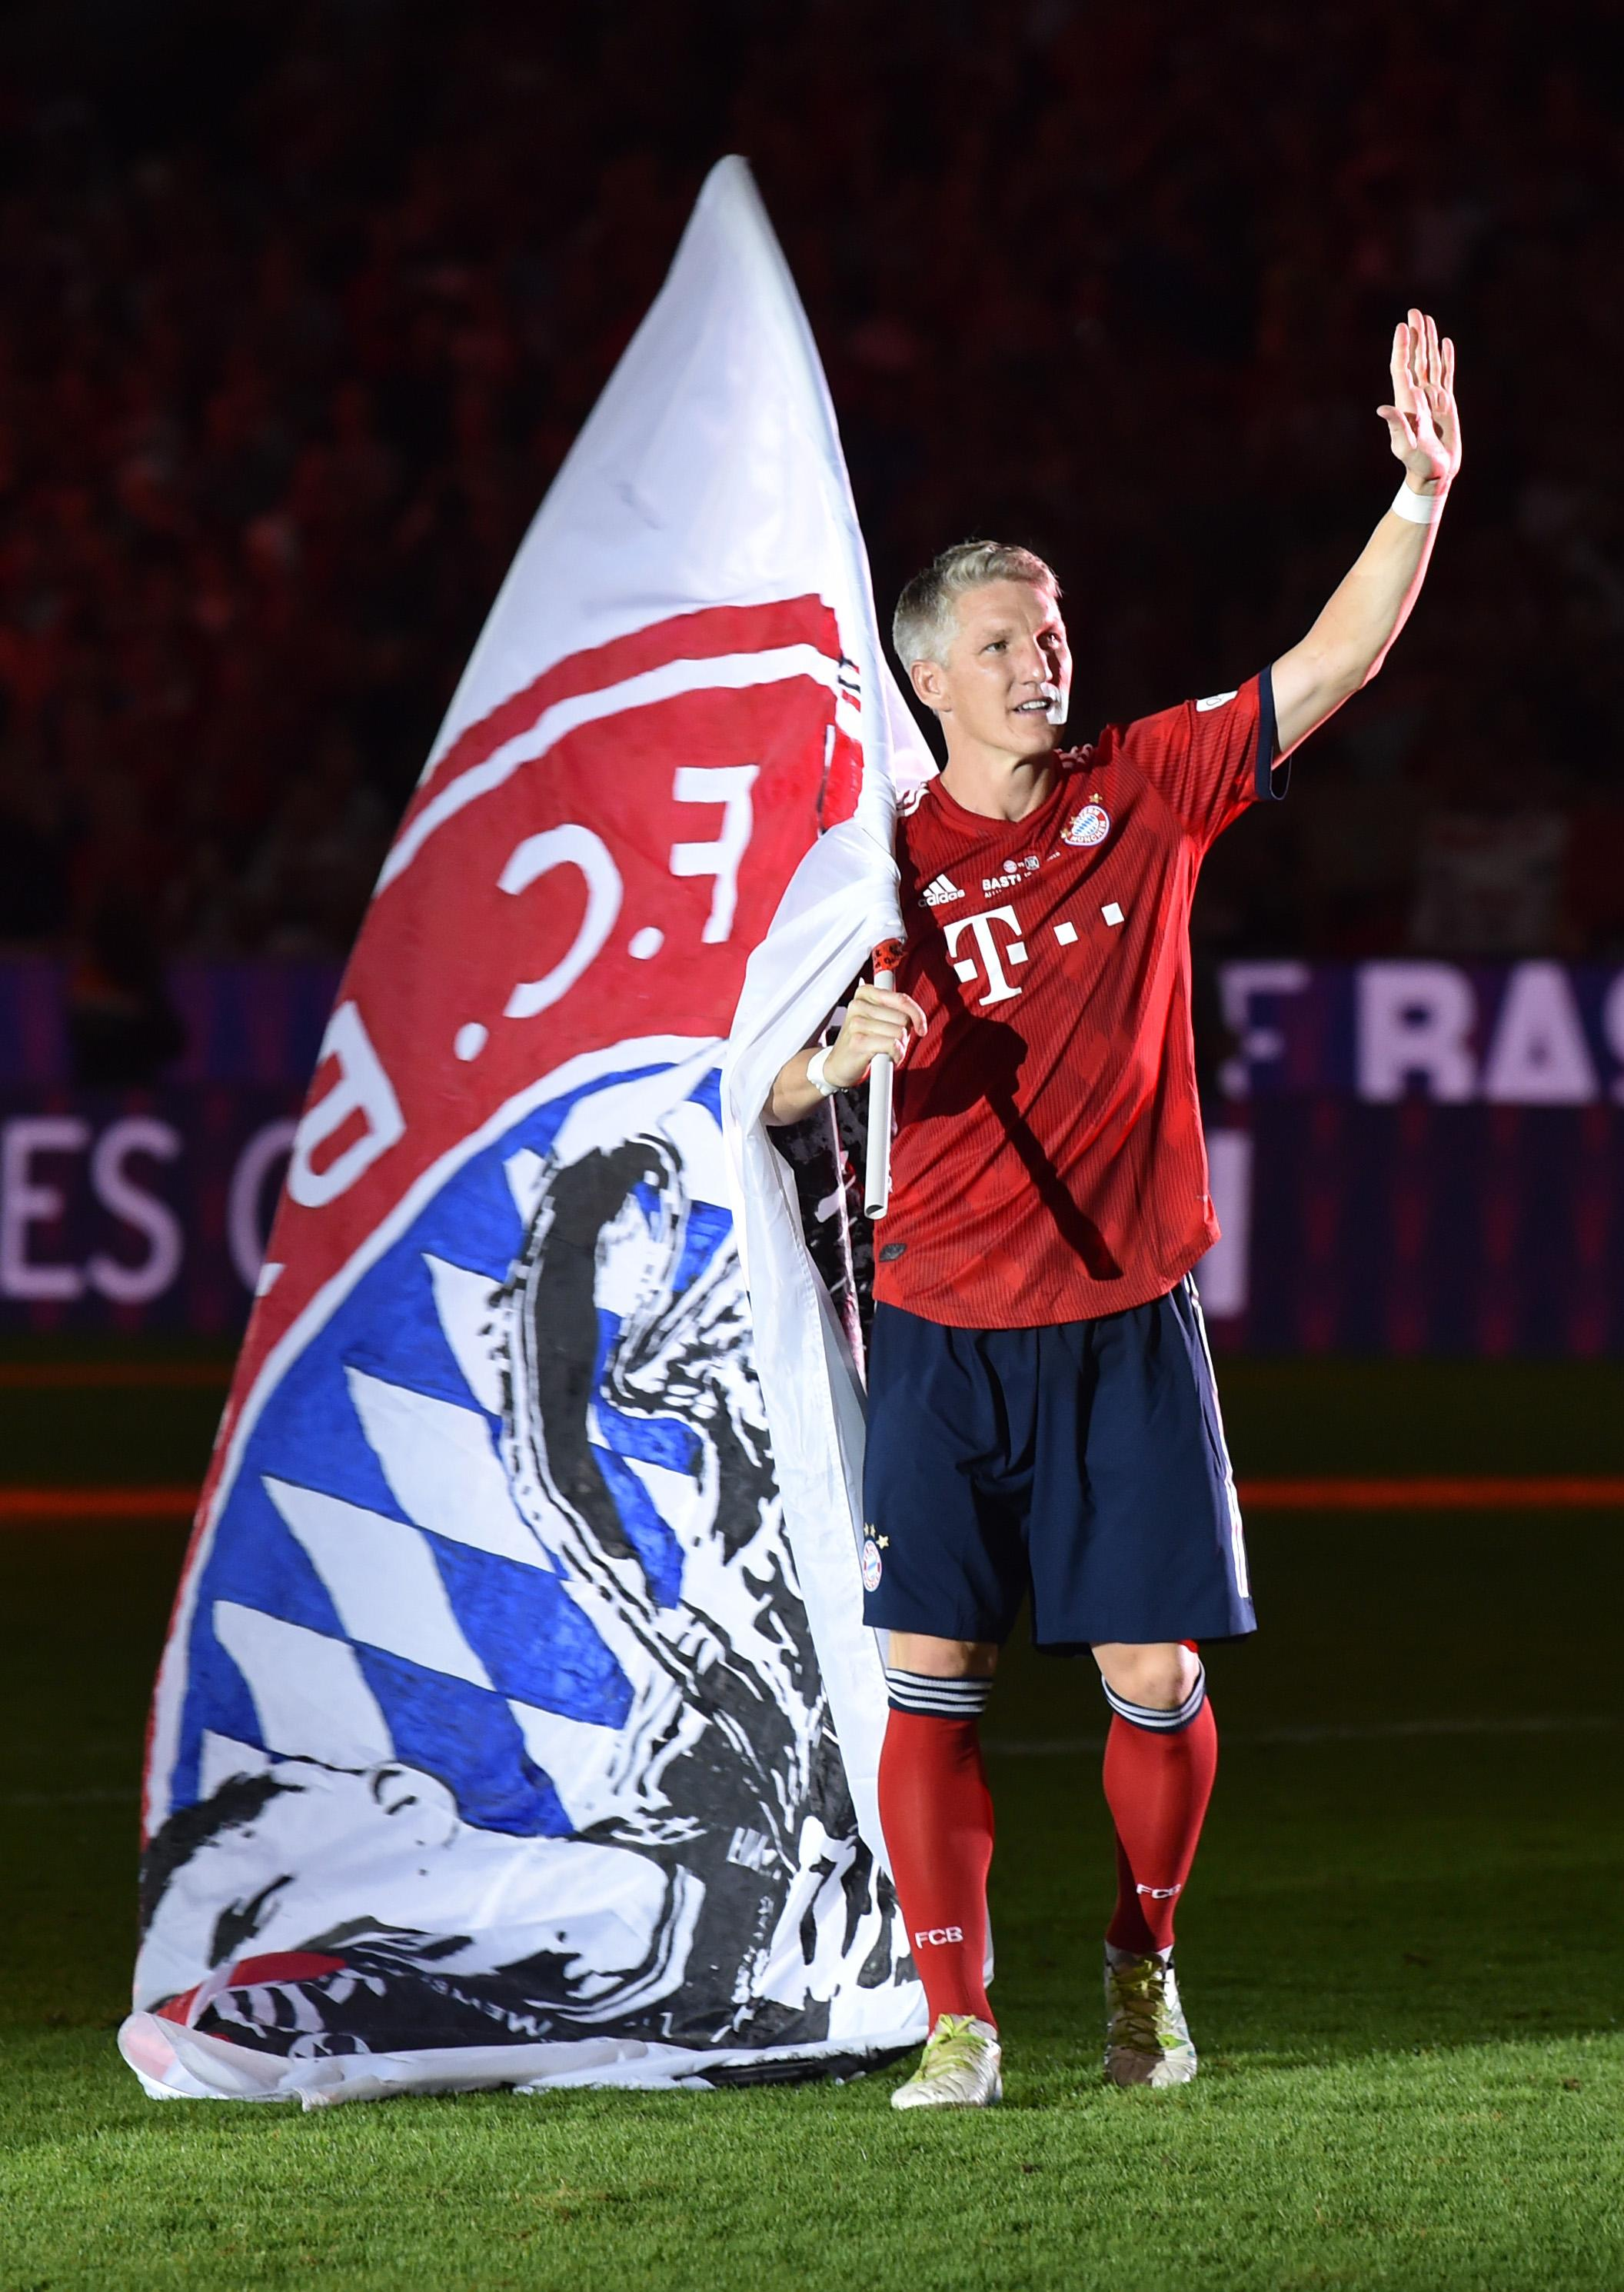 Bastian Schweinsteiger gave an emotional address to fans at a packed Allianz Arena